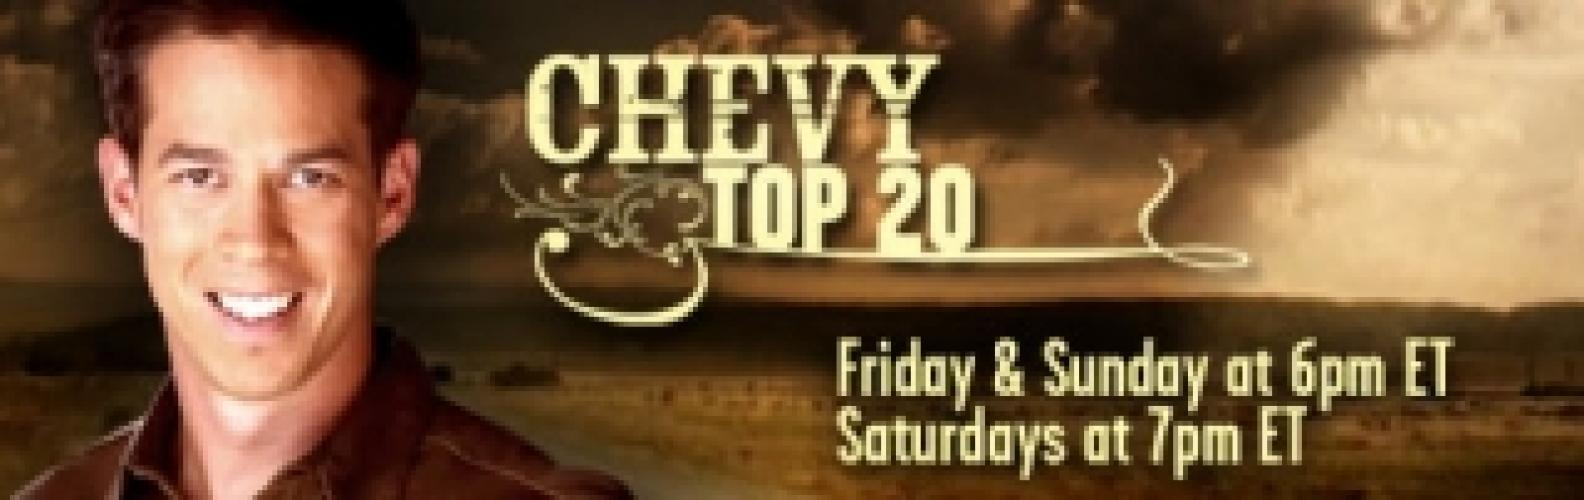 Chevy Top 20 next episode air date poster